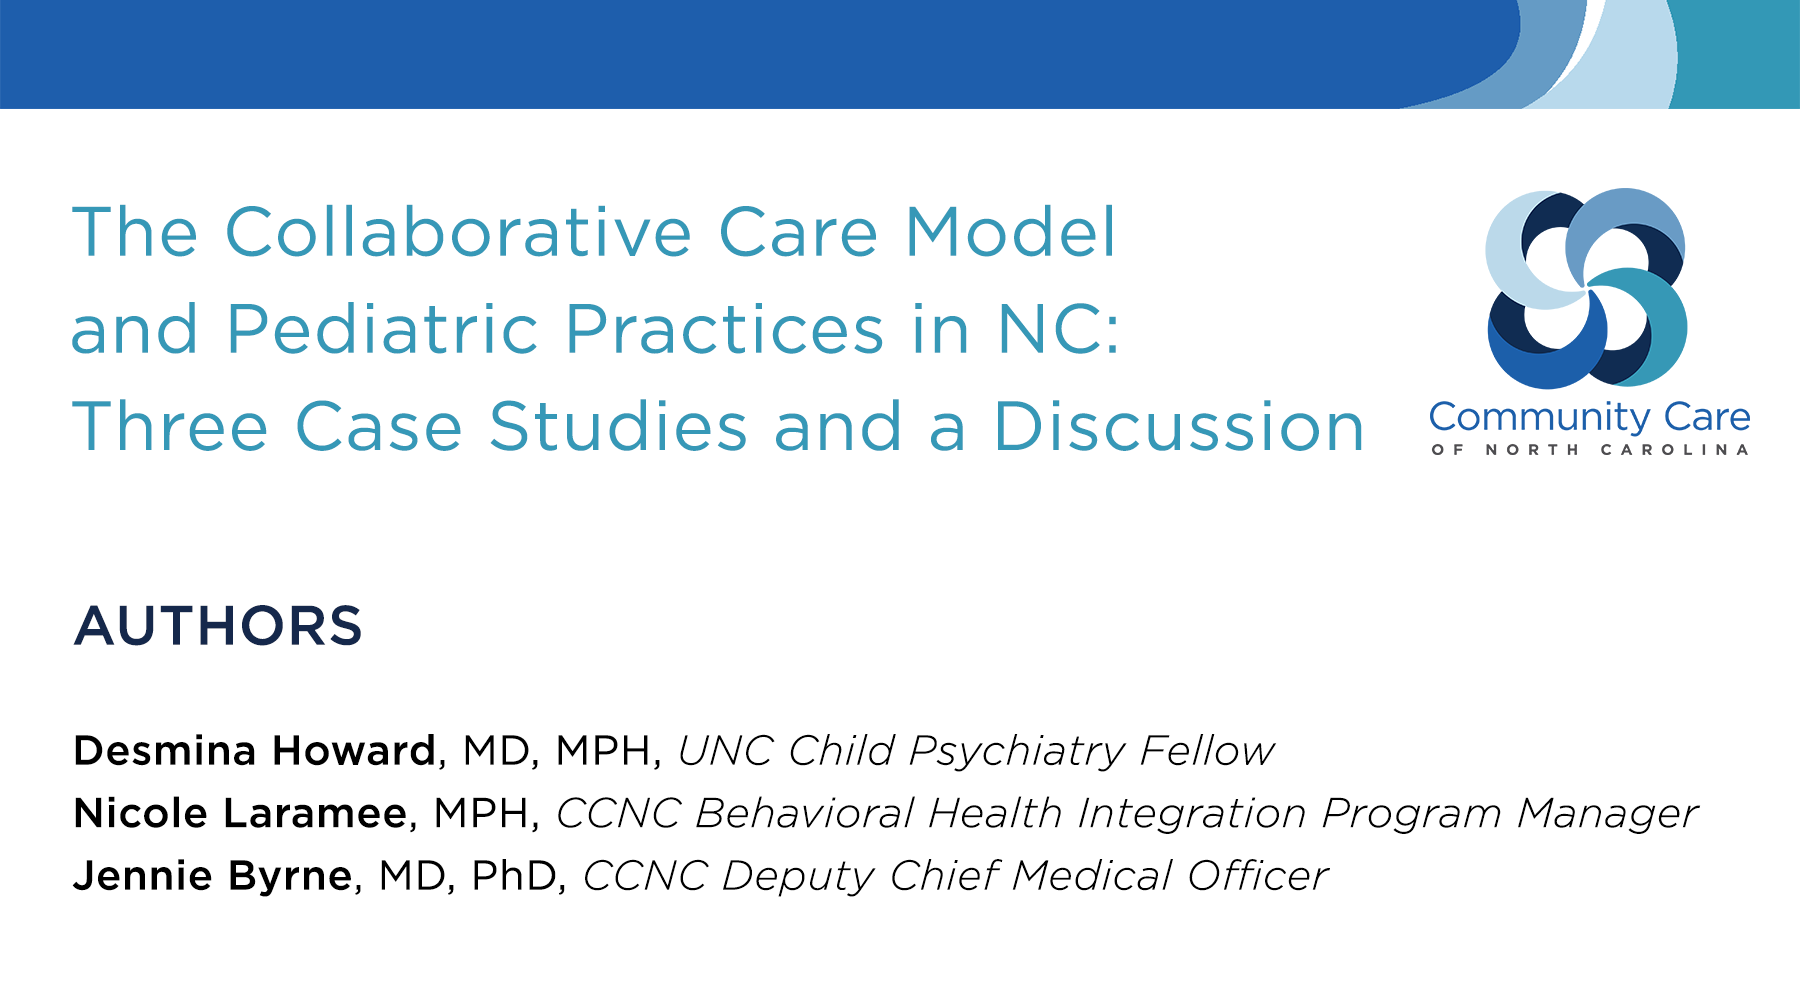 Case study: New model pairs up pediatricians and behavioral health specialty providers to improve patient care and practice revenue